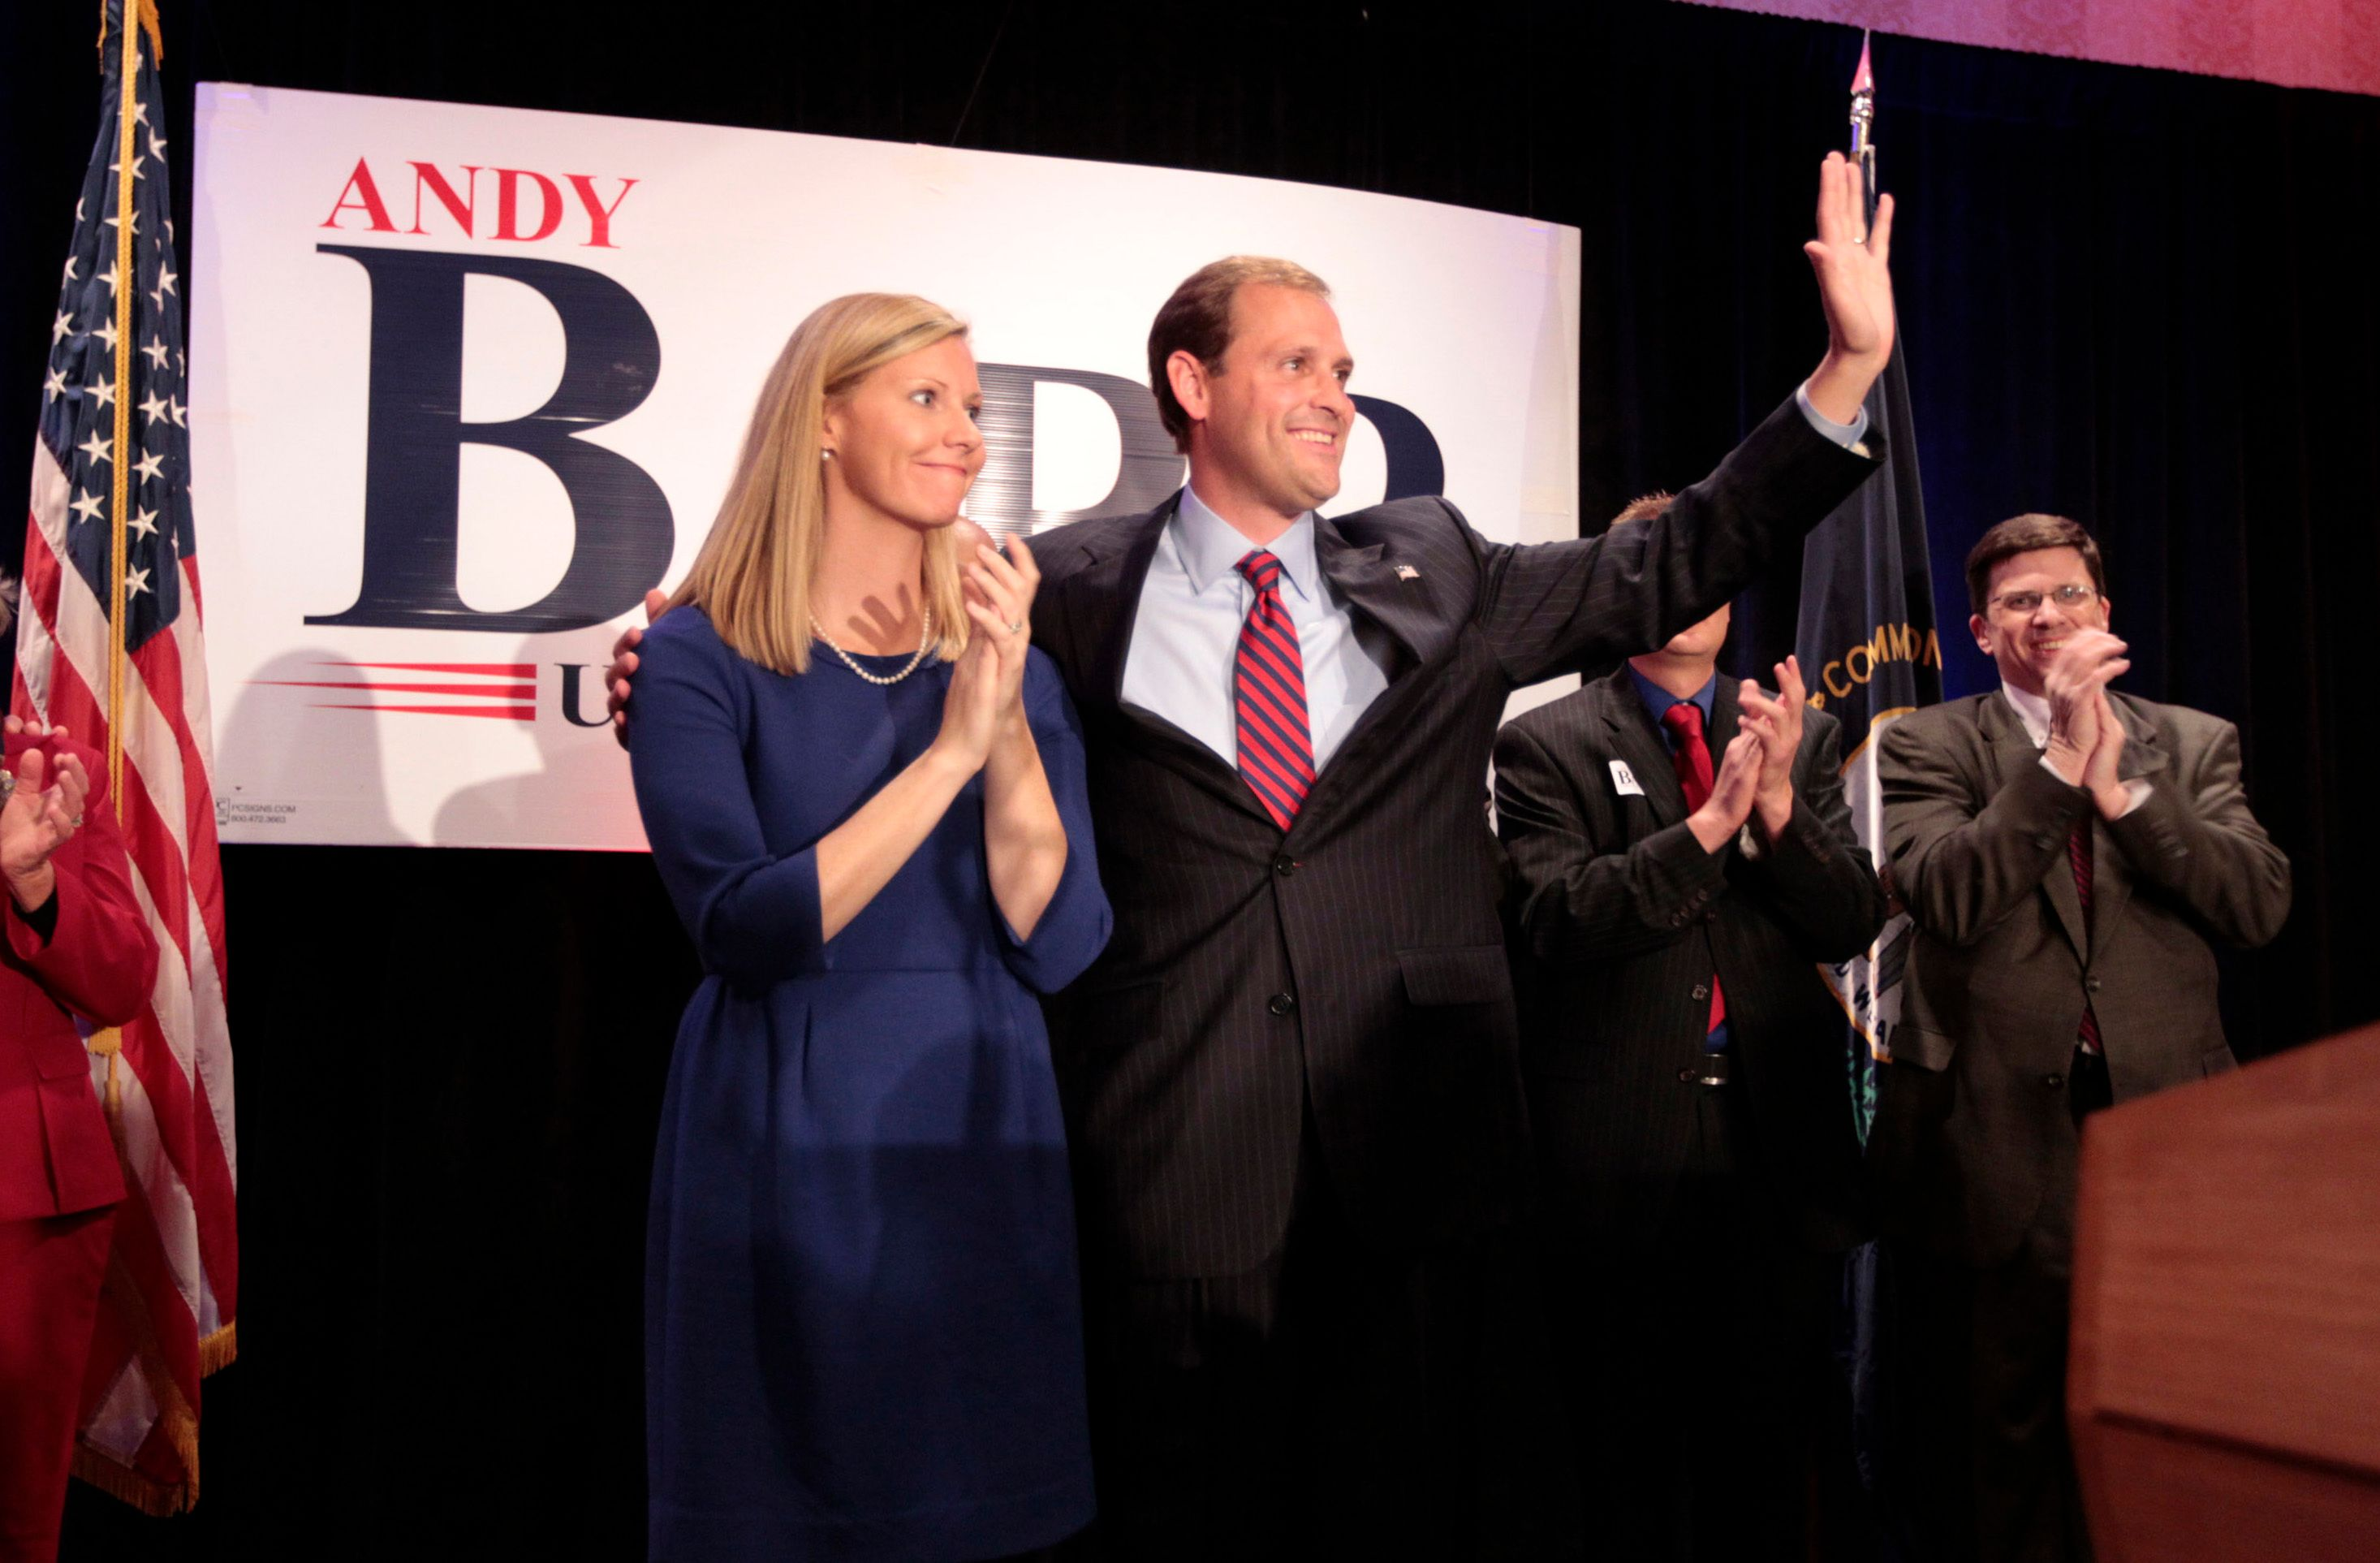 Election Day Republican Andy Barr, with wife Carol Barr  Photo: Getty Images